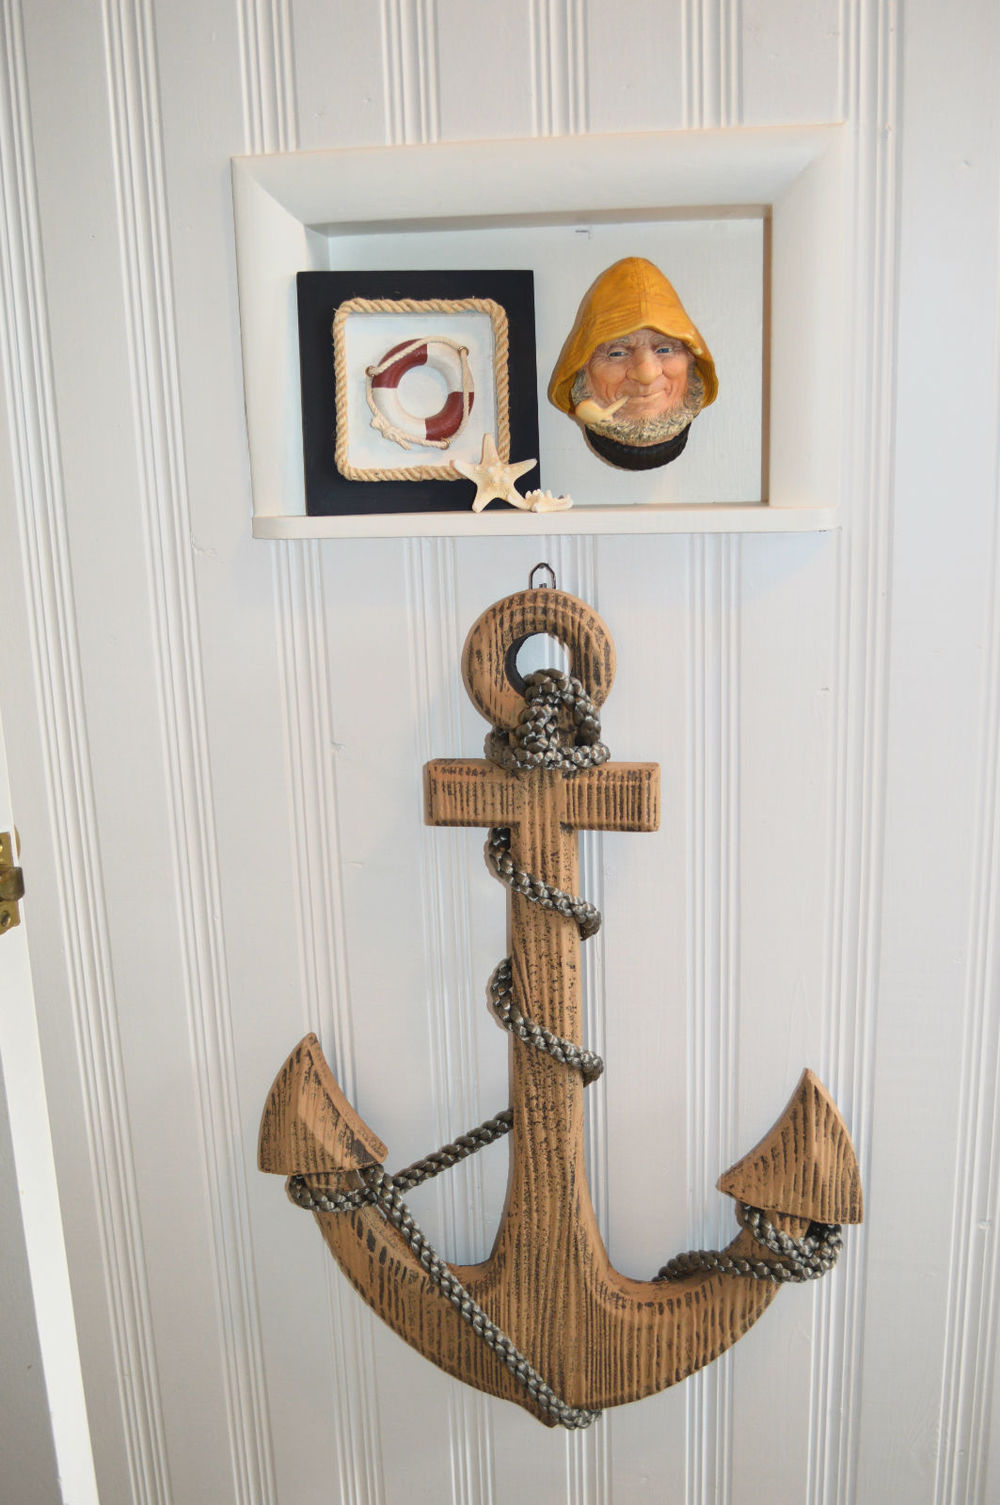 Bosson fisherman head found on Etsy...anchor from Hobby Lobby.